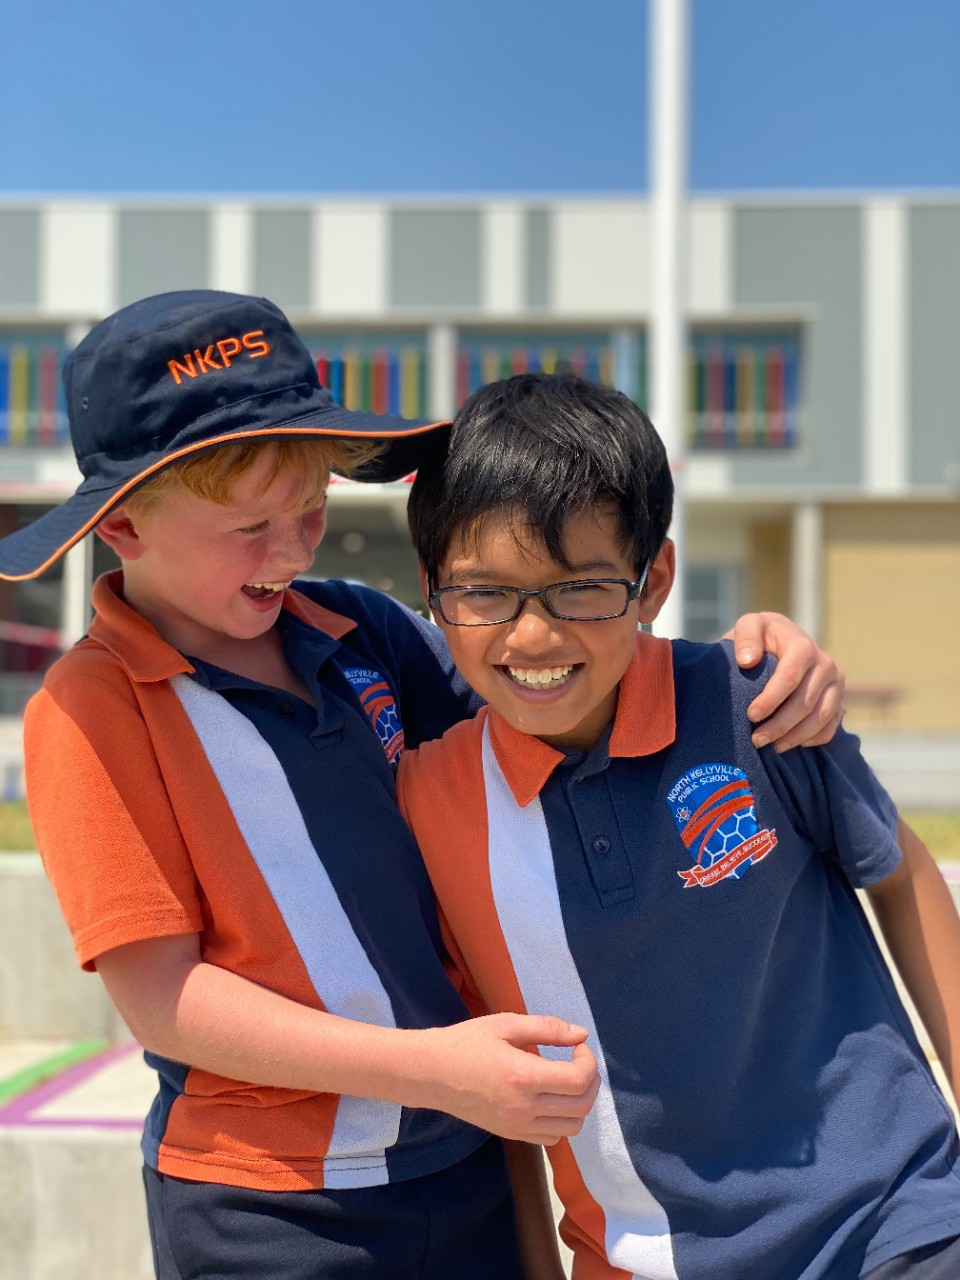 North Kellyville Public School - Building a school for the future